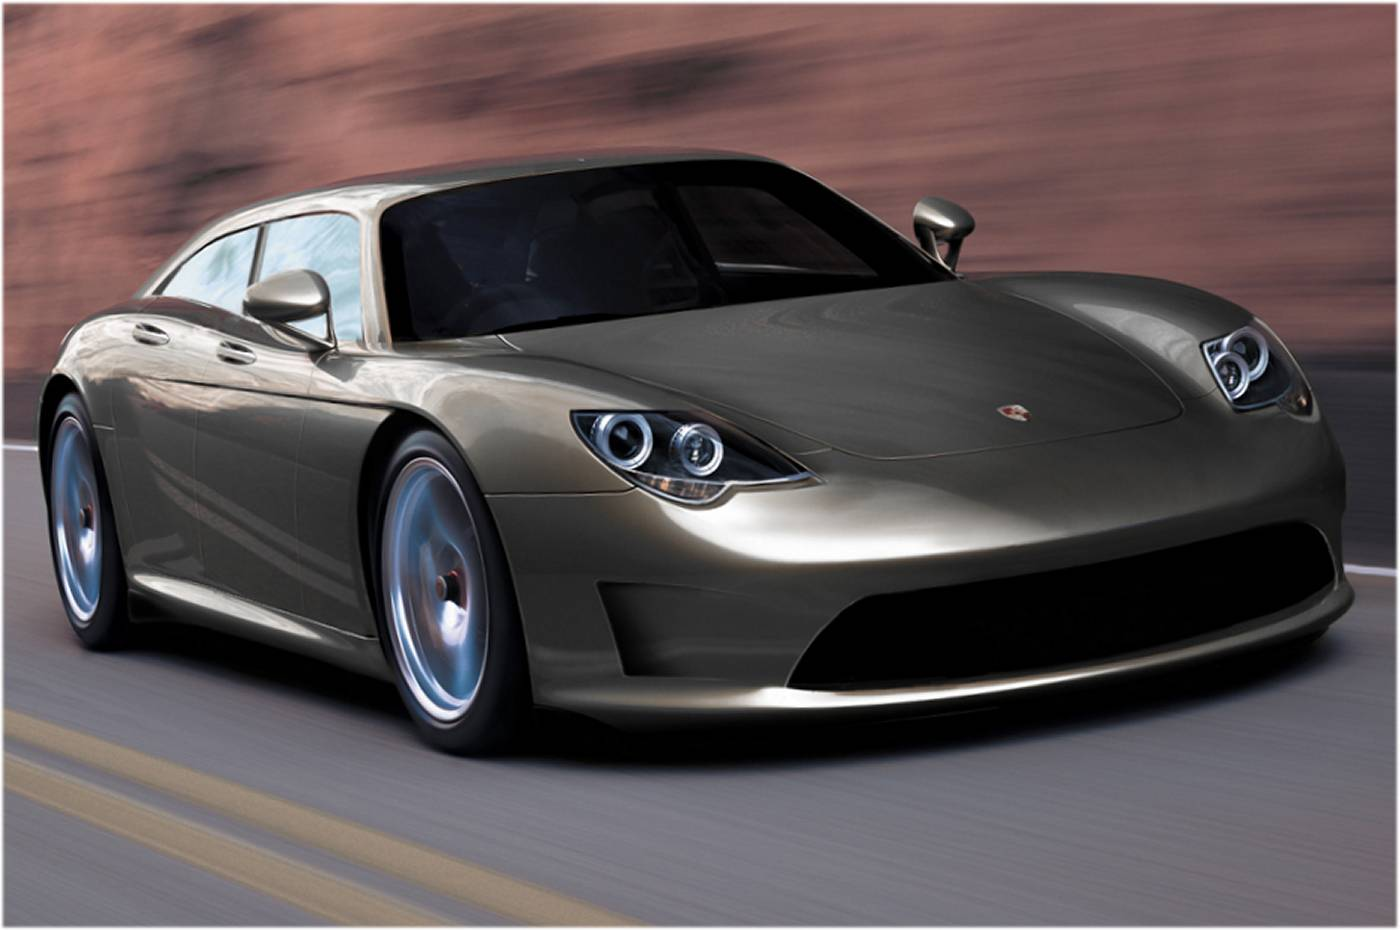 2010 Porsche Panamera Review,and Photos